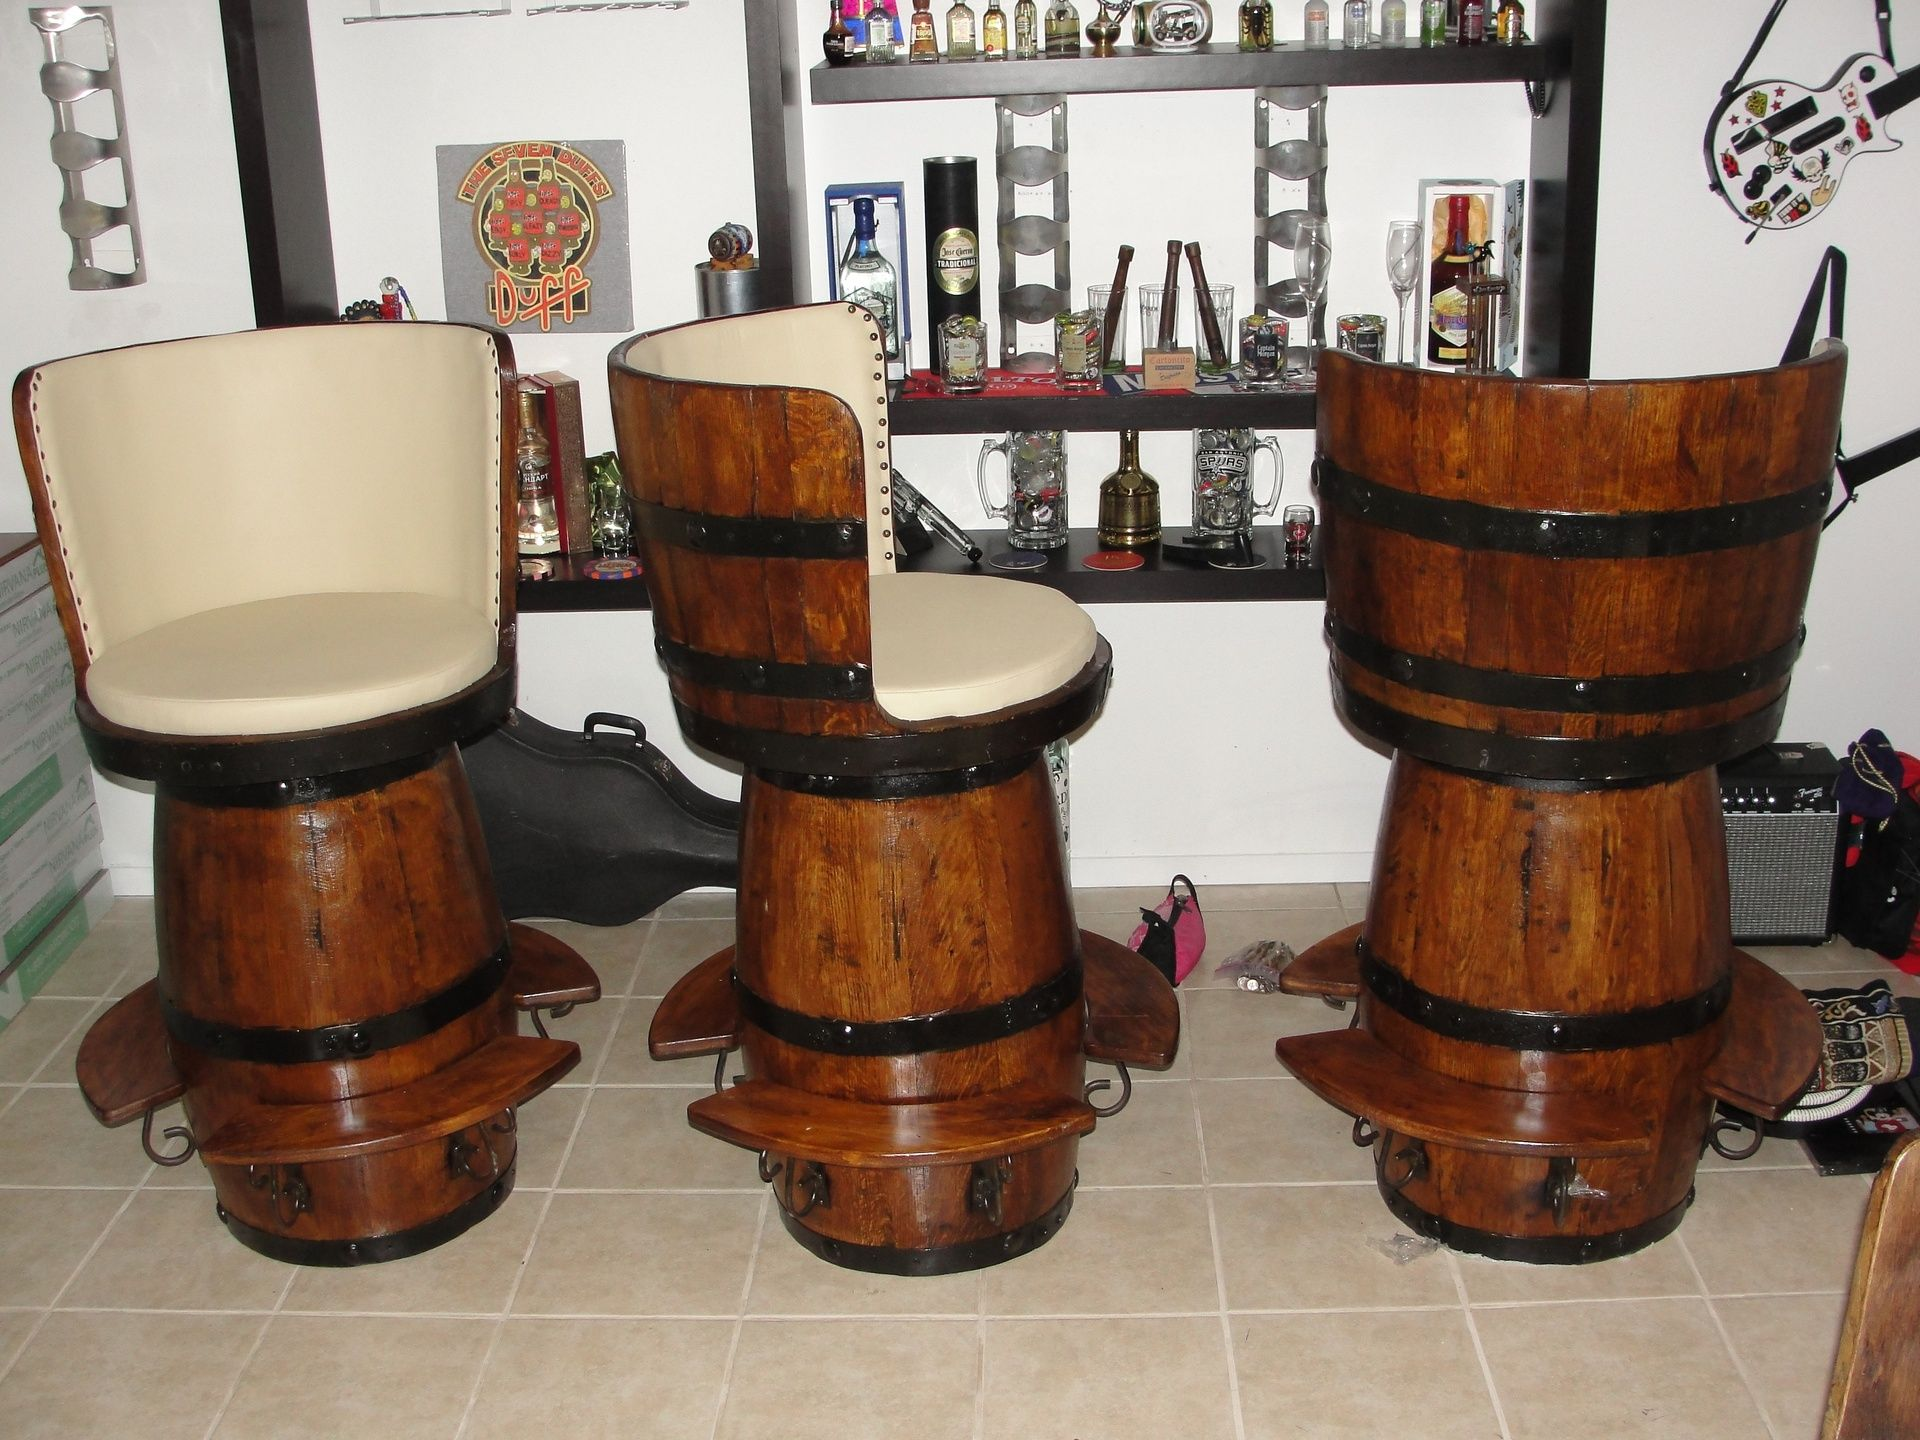 Must Have Man Cave Furniture : Huge bar stools made out of tequila barrels. great for your man cave